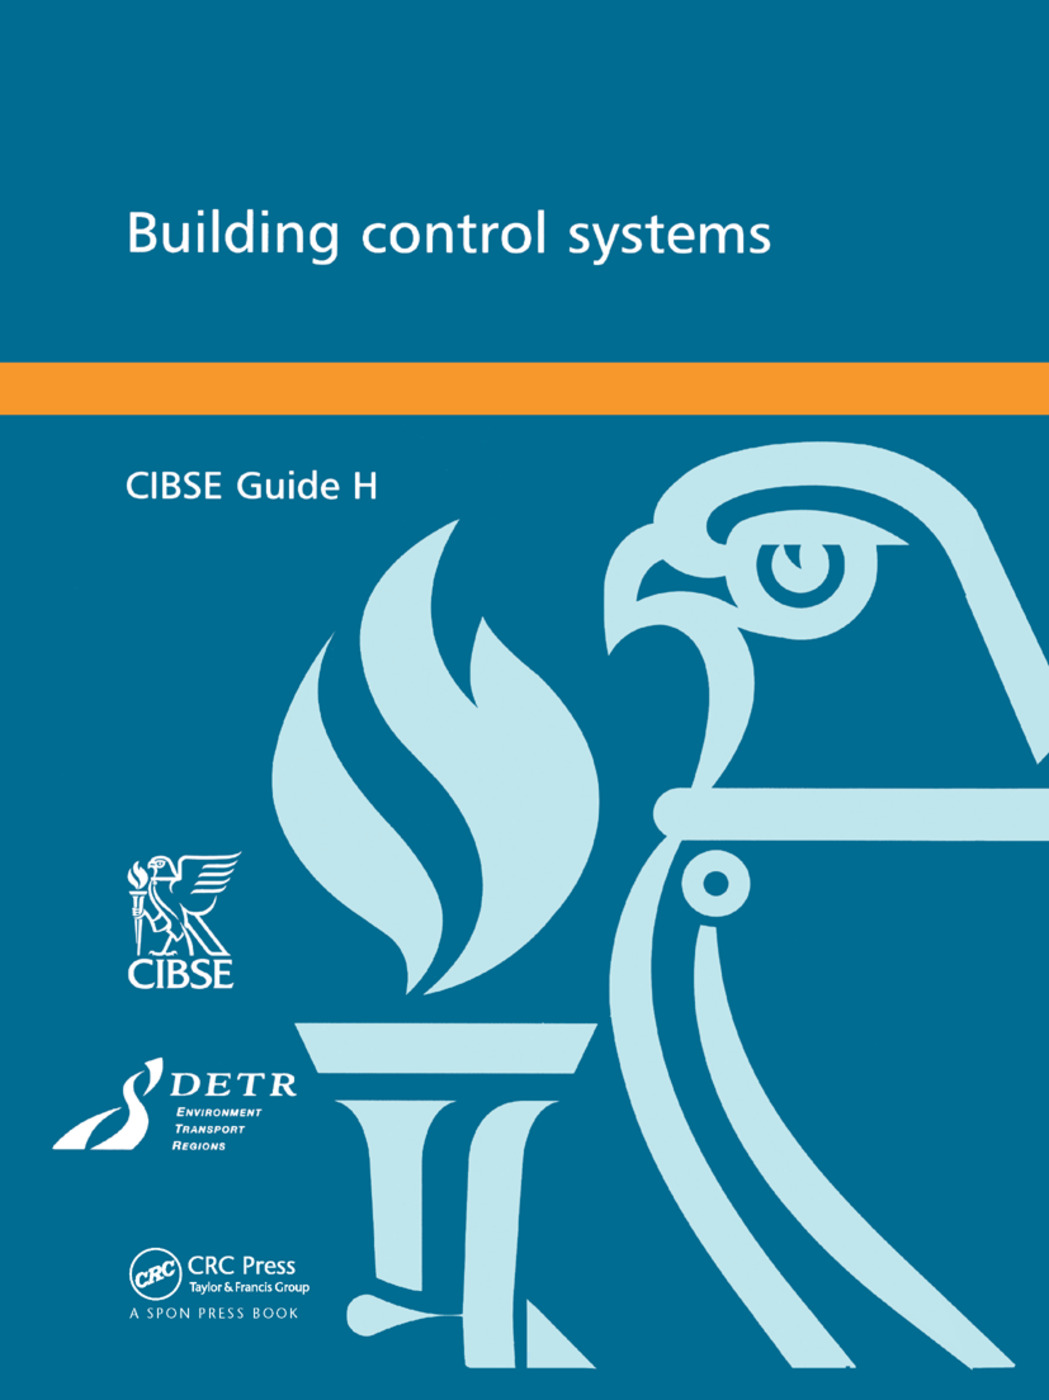 CIBSE Guide H: Building Control Systems book cover